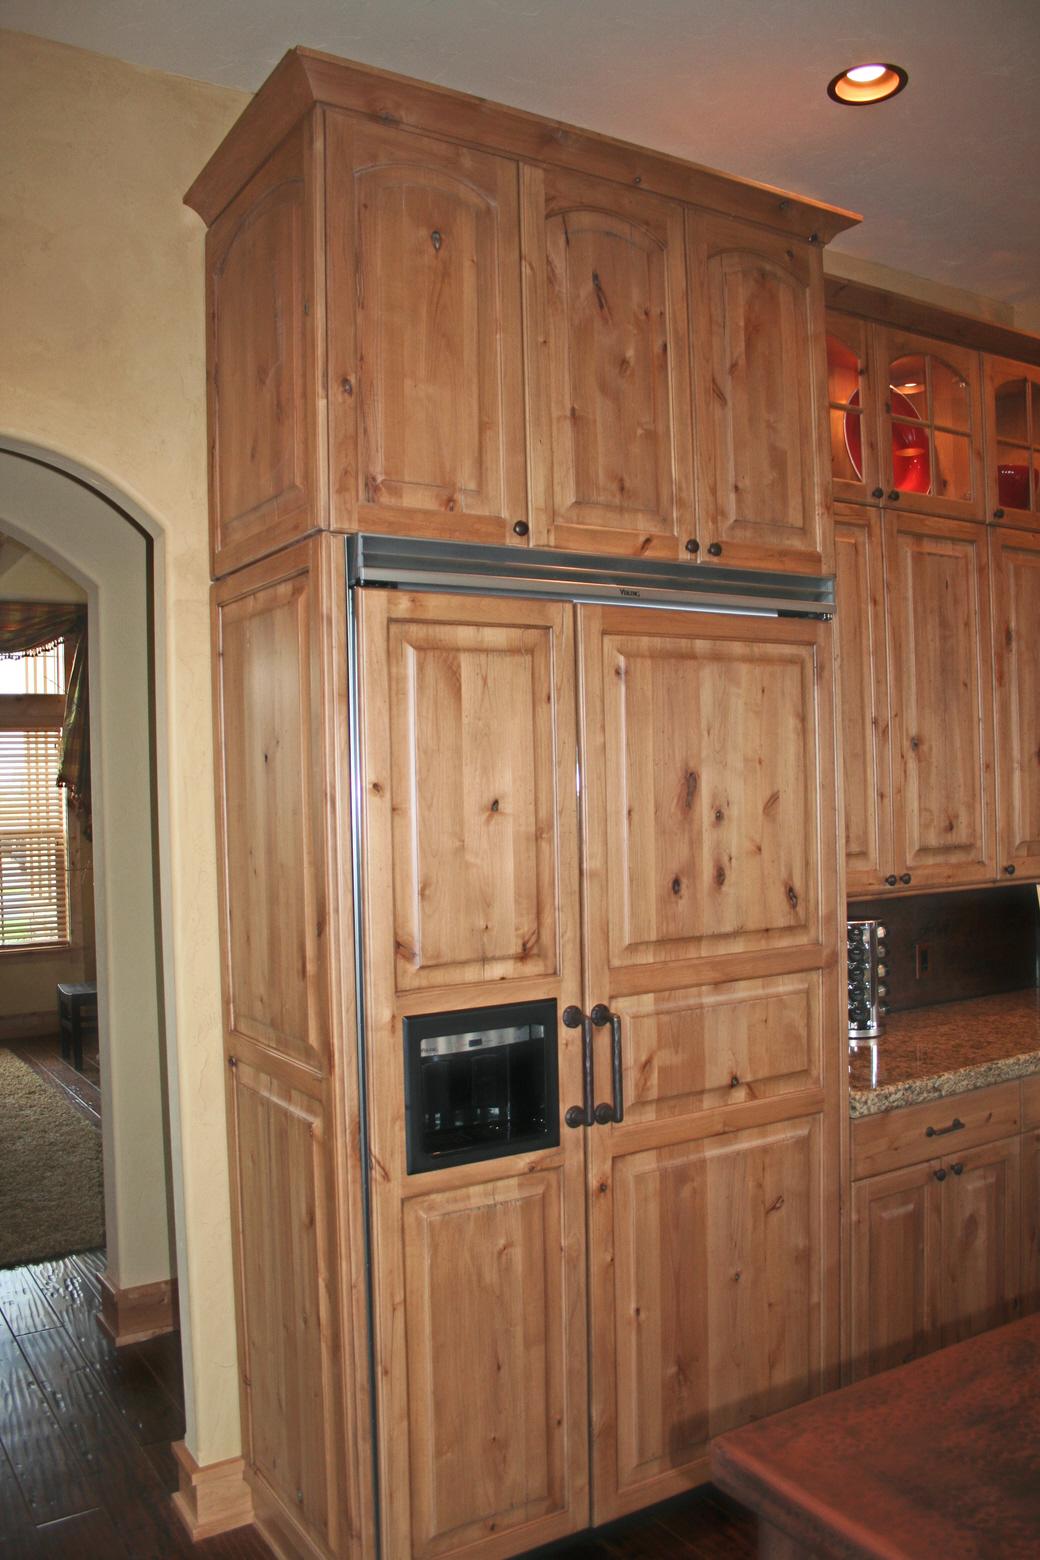 Burrows Cabinetry Plus, Kalispell, MT - Cabinet Design Gallery